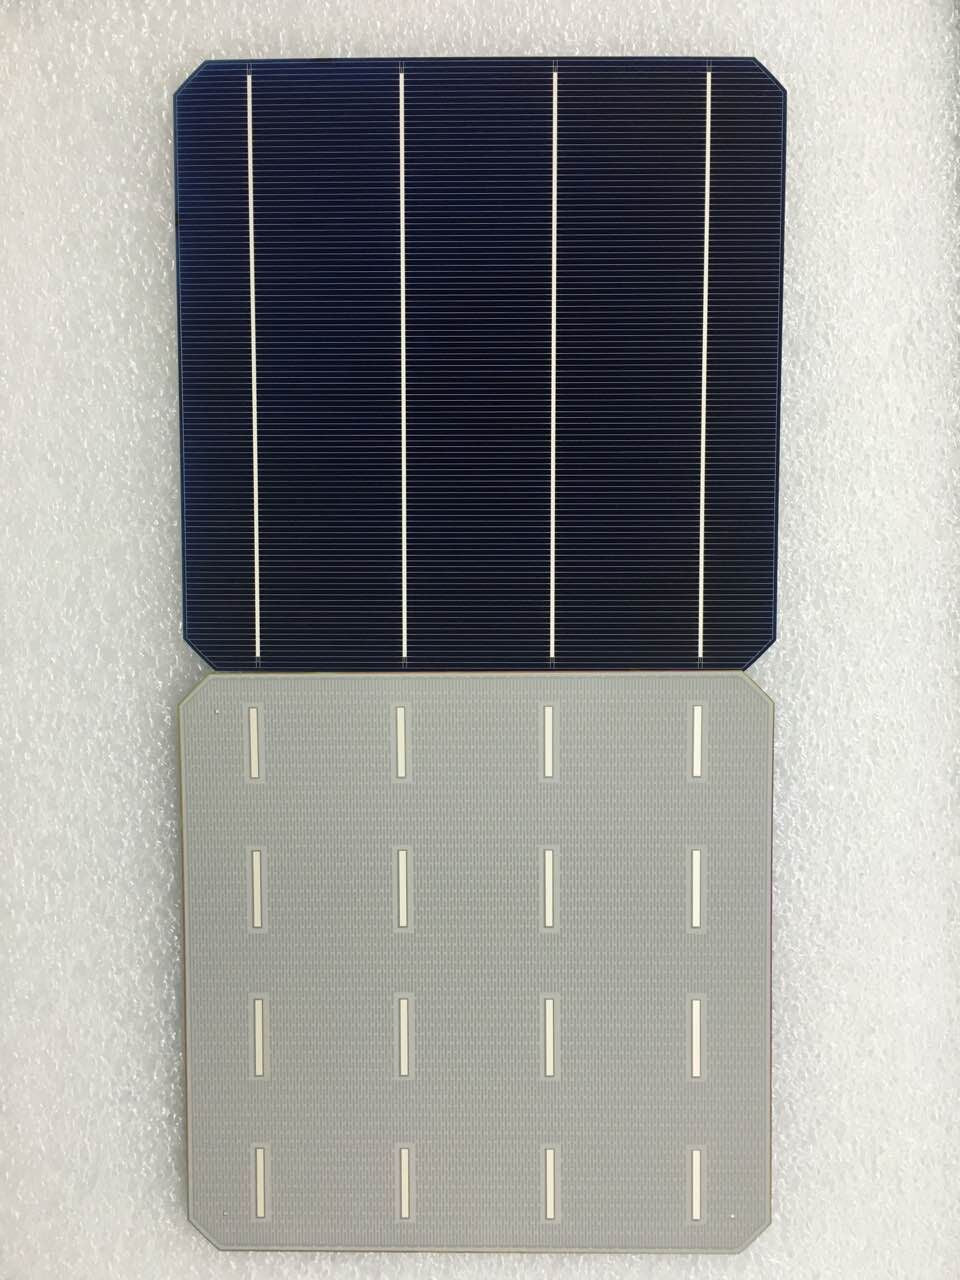 100Pcs 5.03W 20.6% Effciency Grade A 156 * 156MM Photovoltaic Mono Monocrystalline Silicon Solar Cell 6x6 For Solar Panel - Trivoshop.com